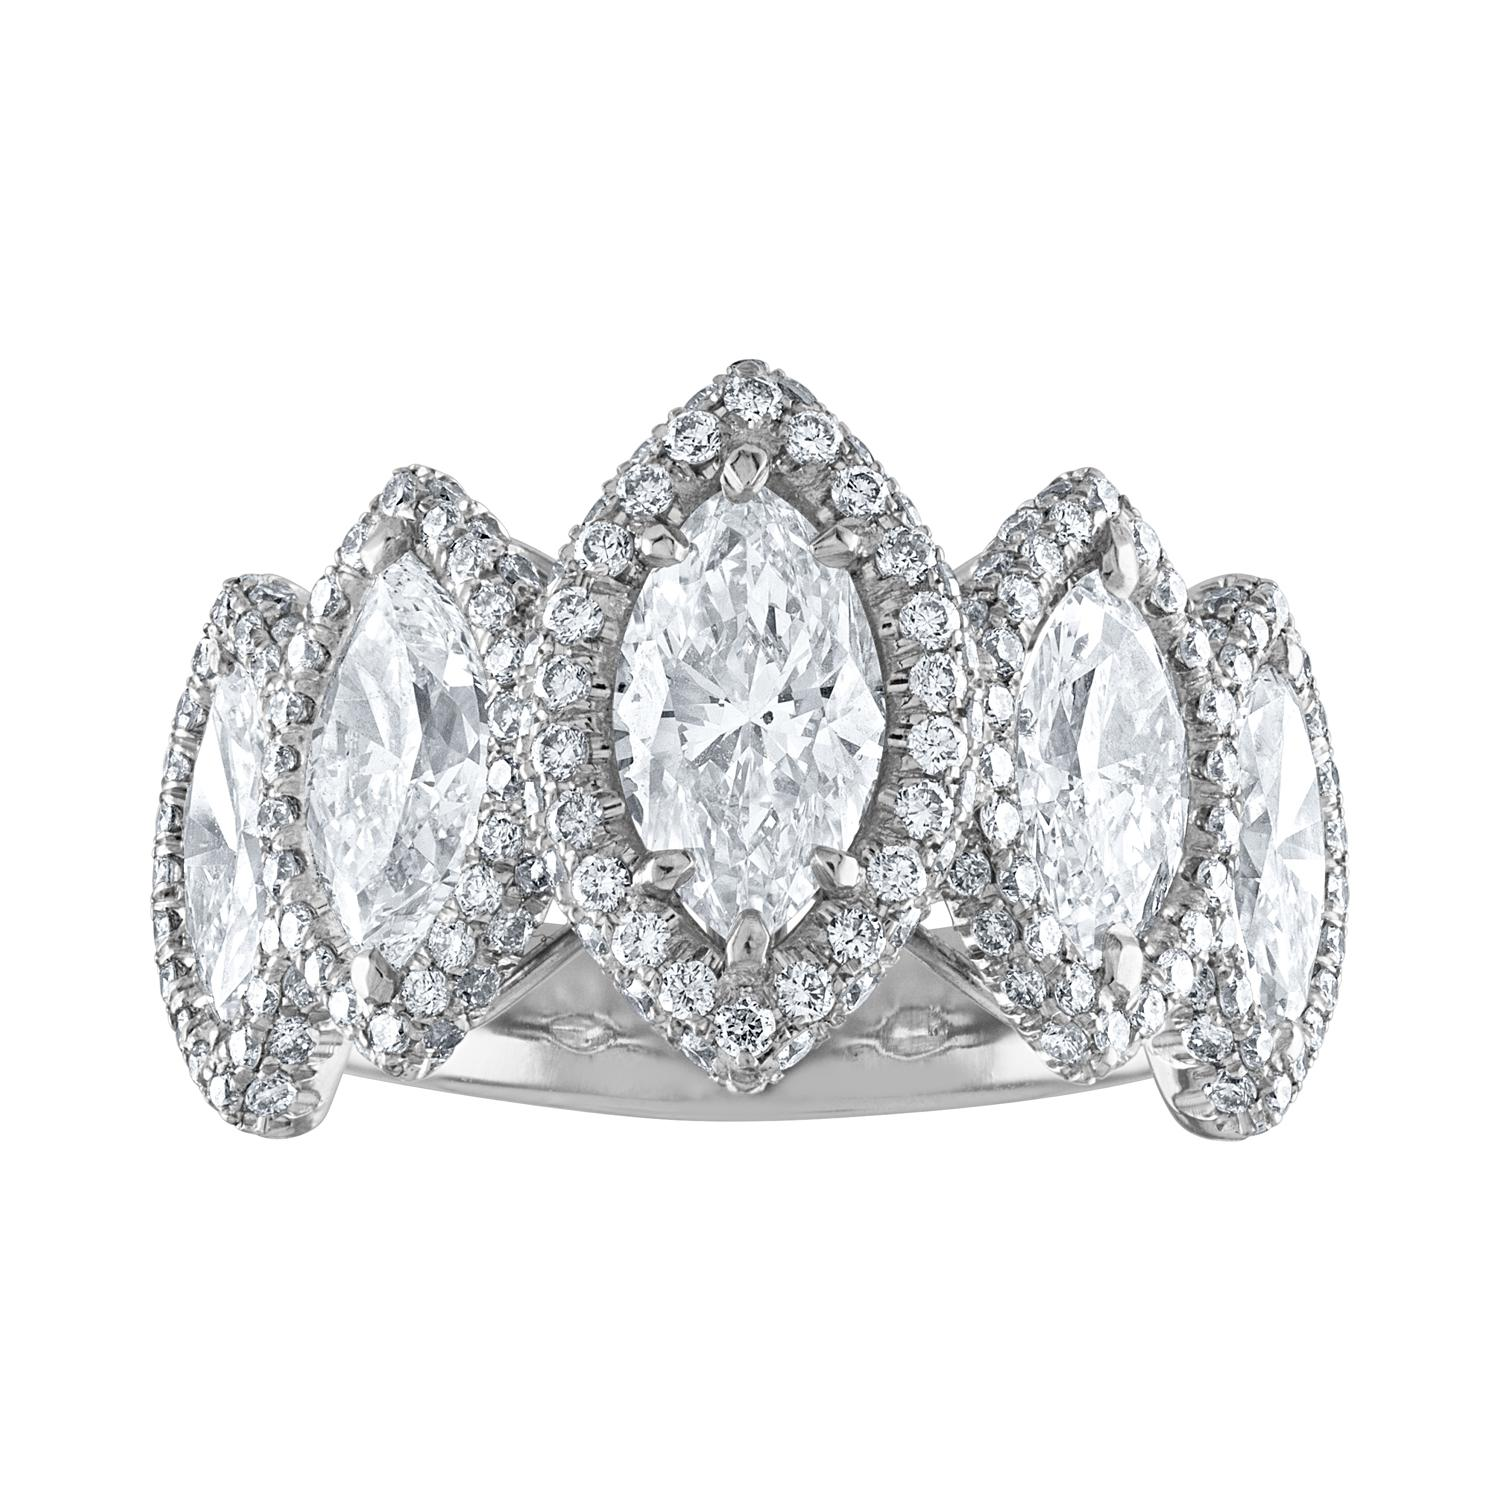 GIA Certified 4.23 Carat Five-Stone Marquise Cut Diamond Platinum Ring